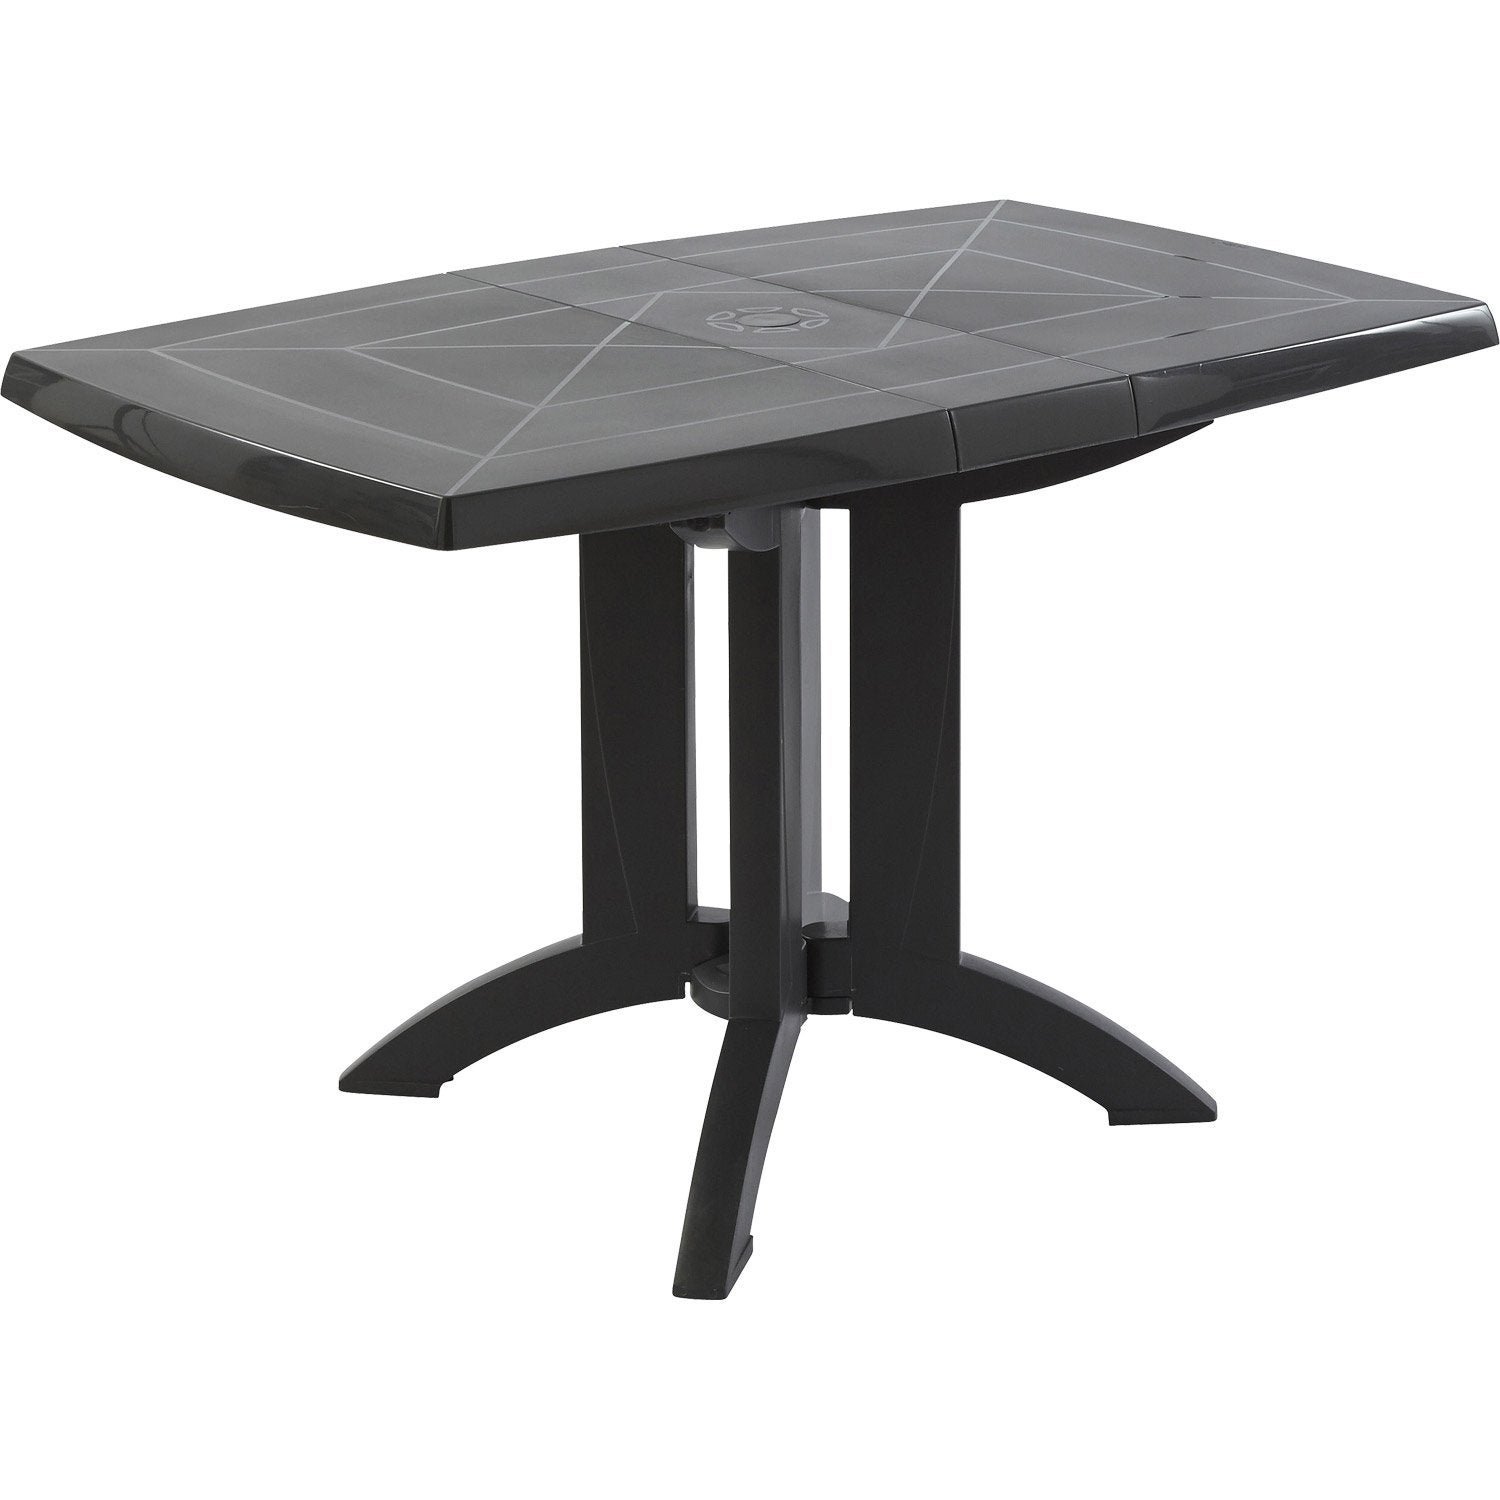 table de jardin grosfillex v ga rectangulaire anthracite 4 personnes leroy merlin. Black Bedroom Furniture Sets. Home Design Ideas